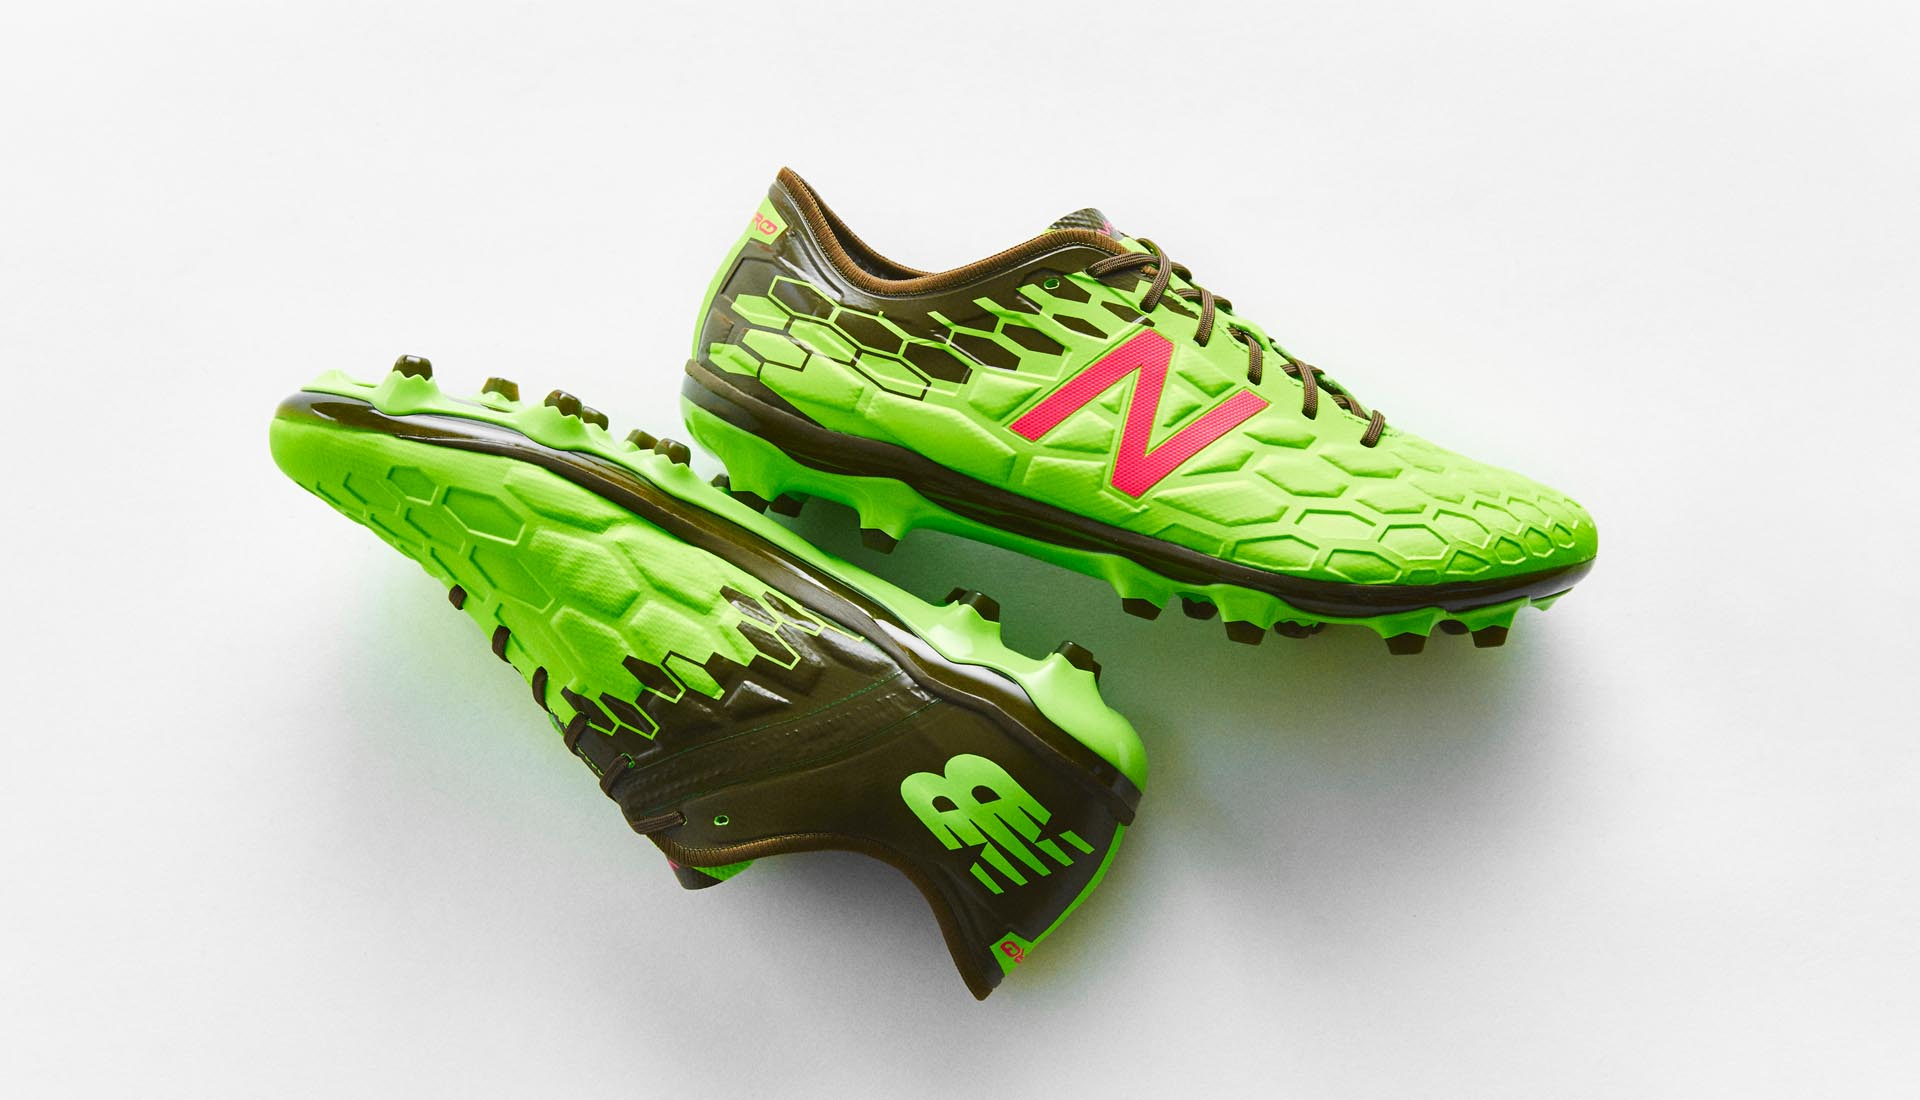 new balance visaro. new balance have ensured that the second-generation visaro 2.0 sticks to control, touch and comfort characteristics of first-gem.